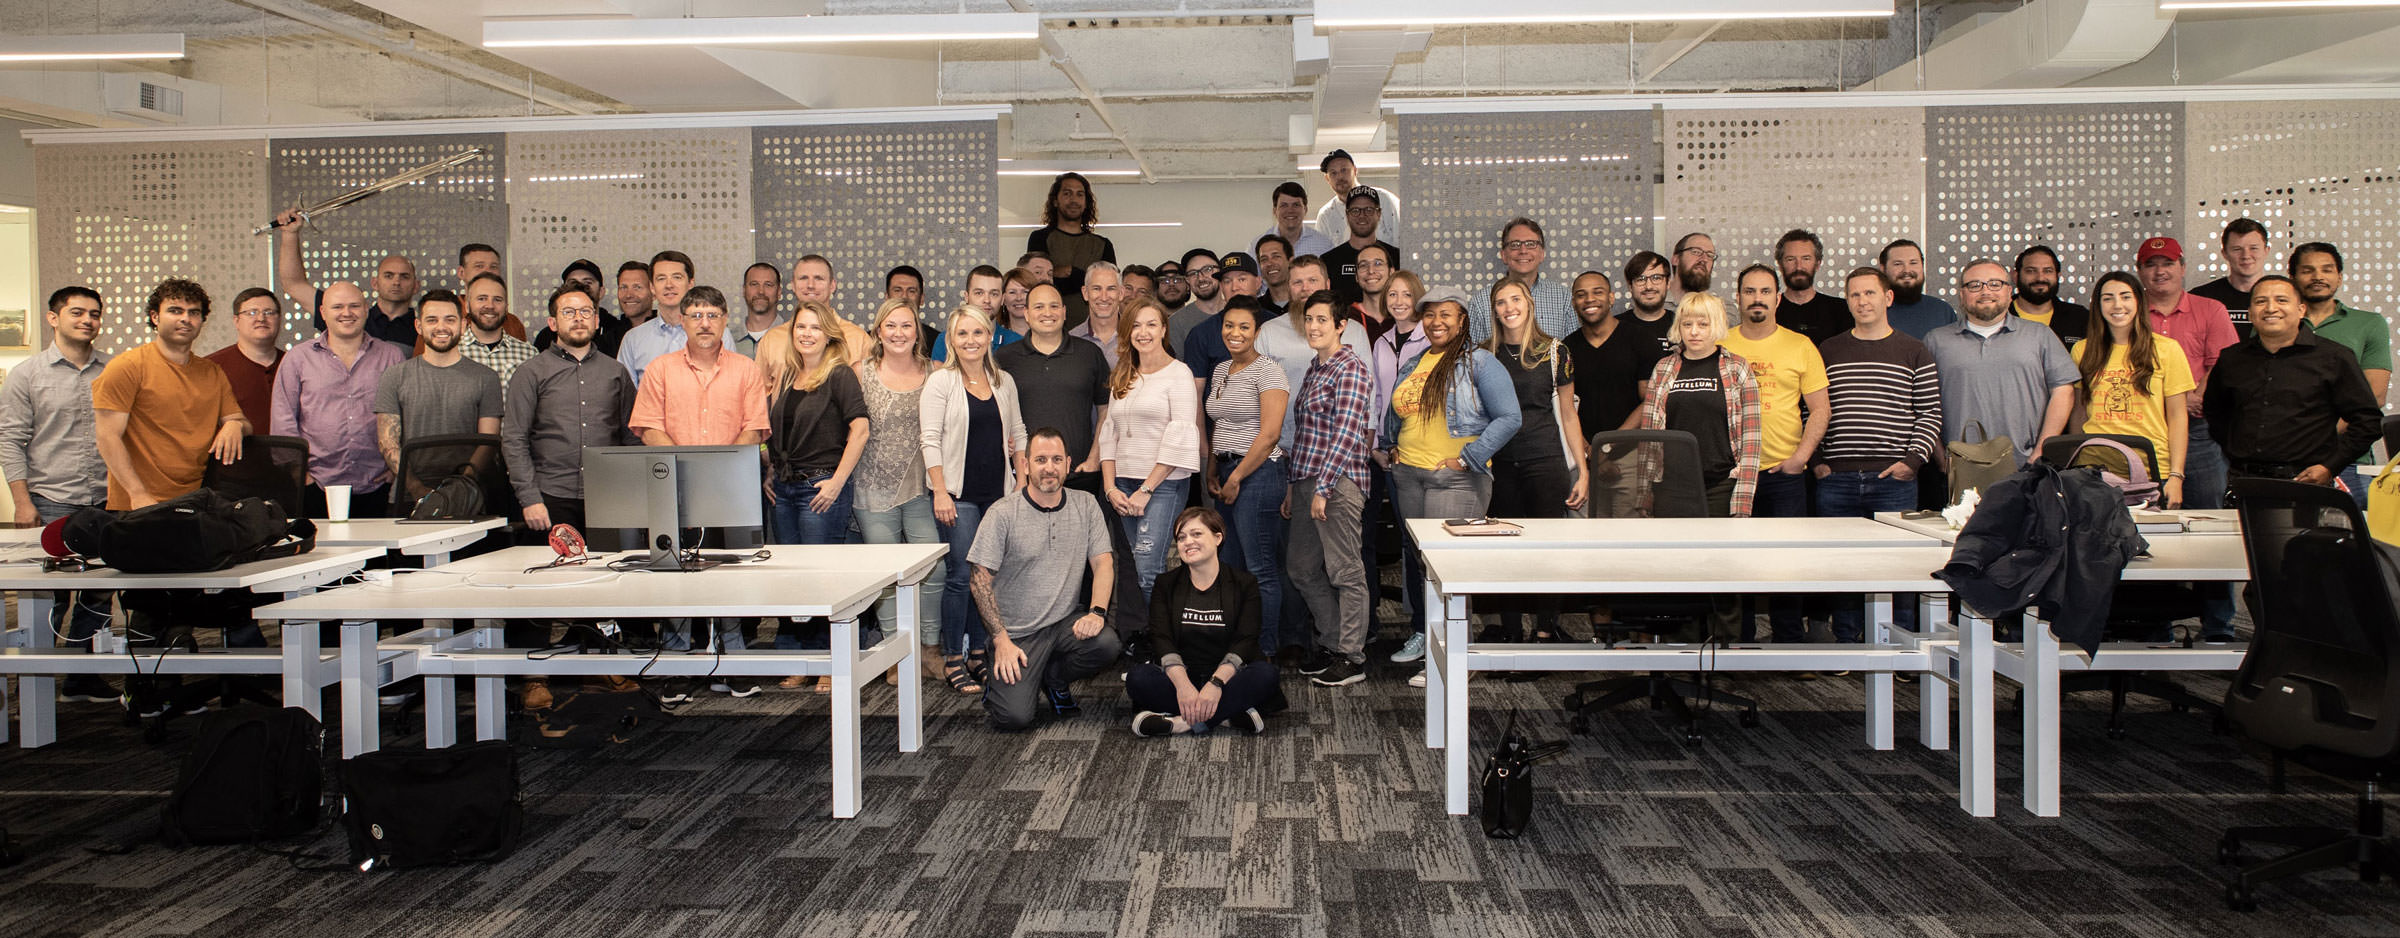 A wide shot of all Intellum employees posing for a group photo in the Intellum office